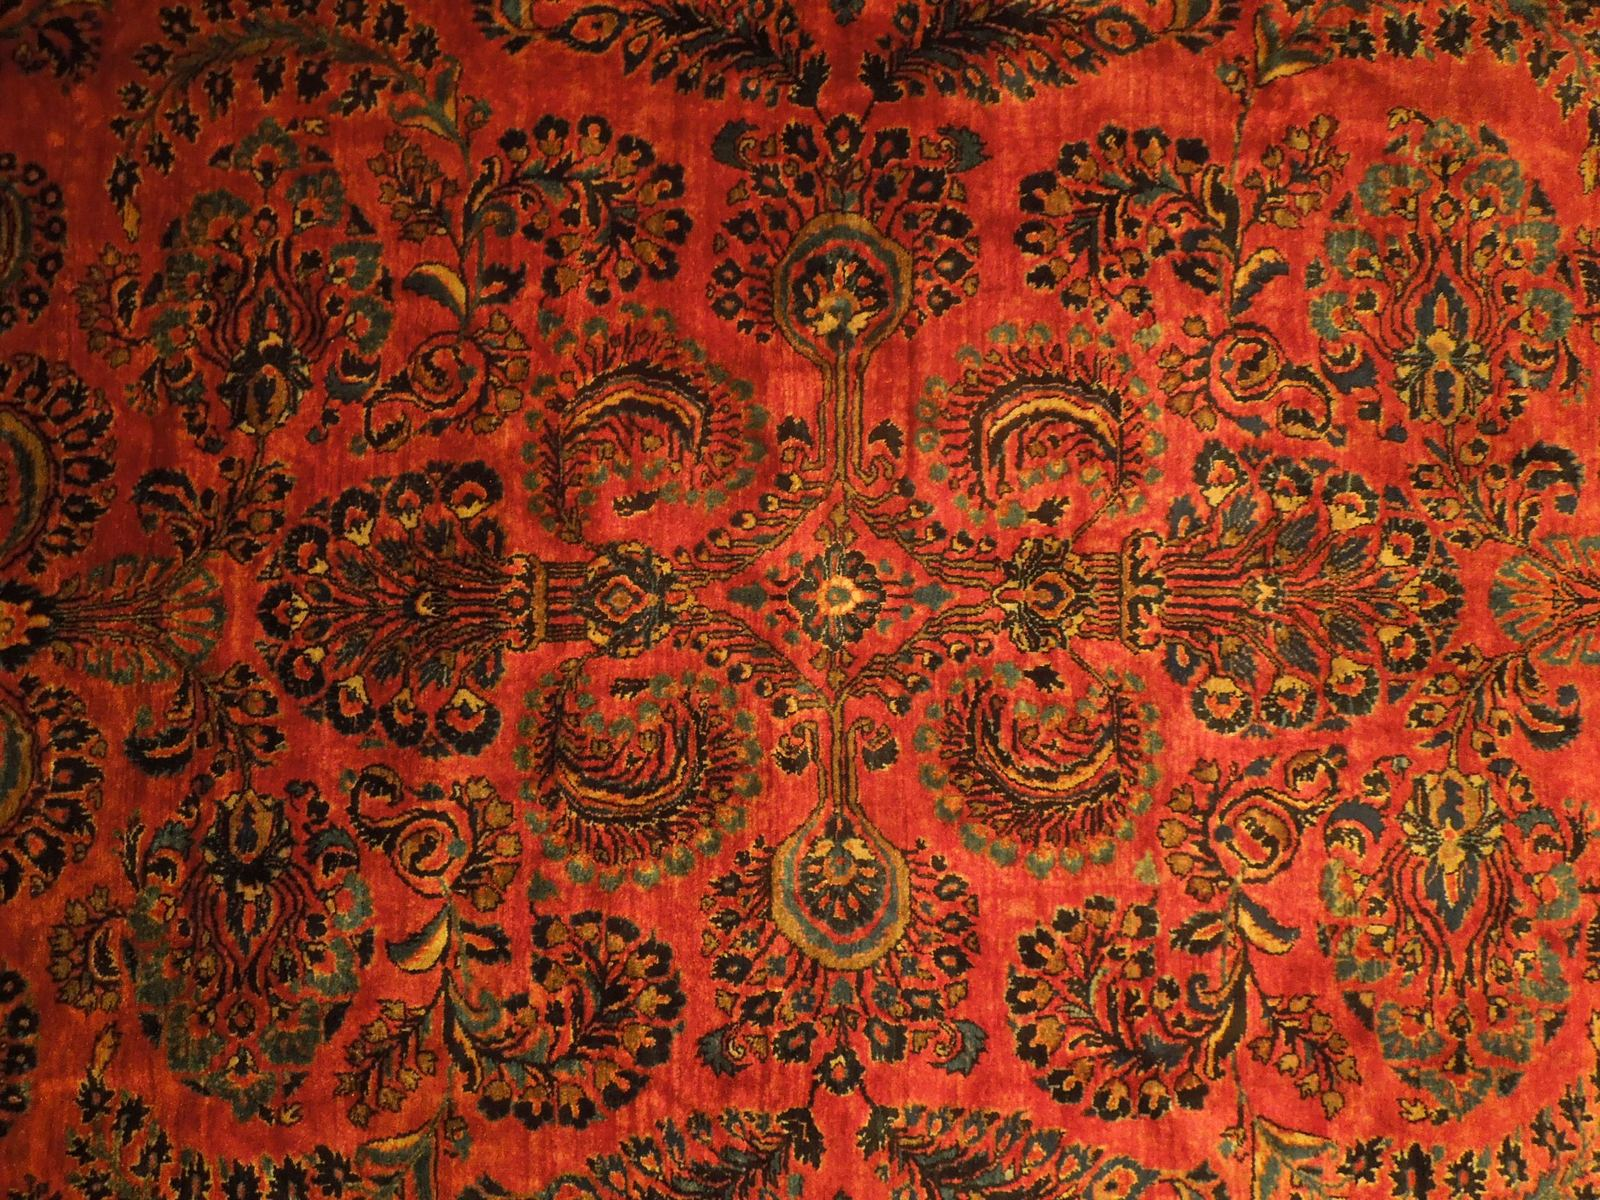 Red Sarouk Persian Wool Handmade Rug 11' x 18' Vivid Red Detailed Original Rug image 6